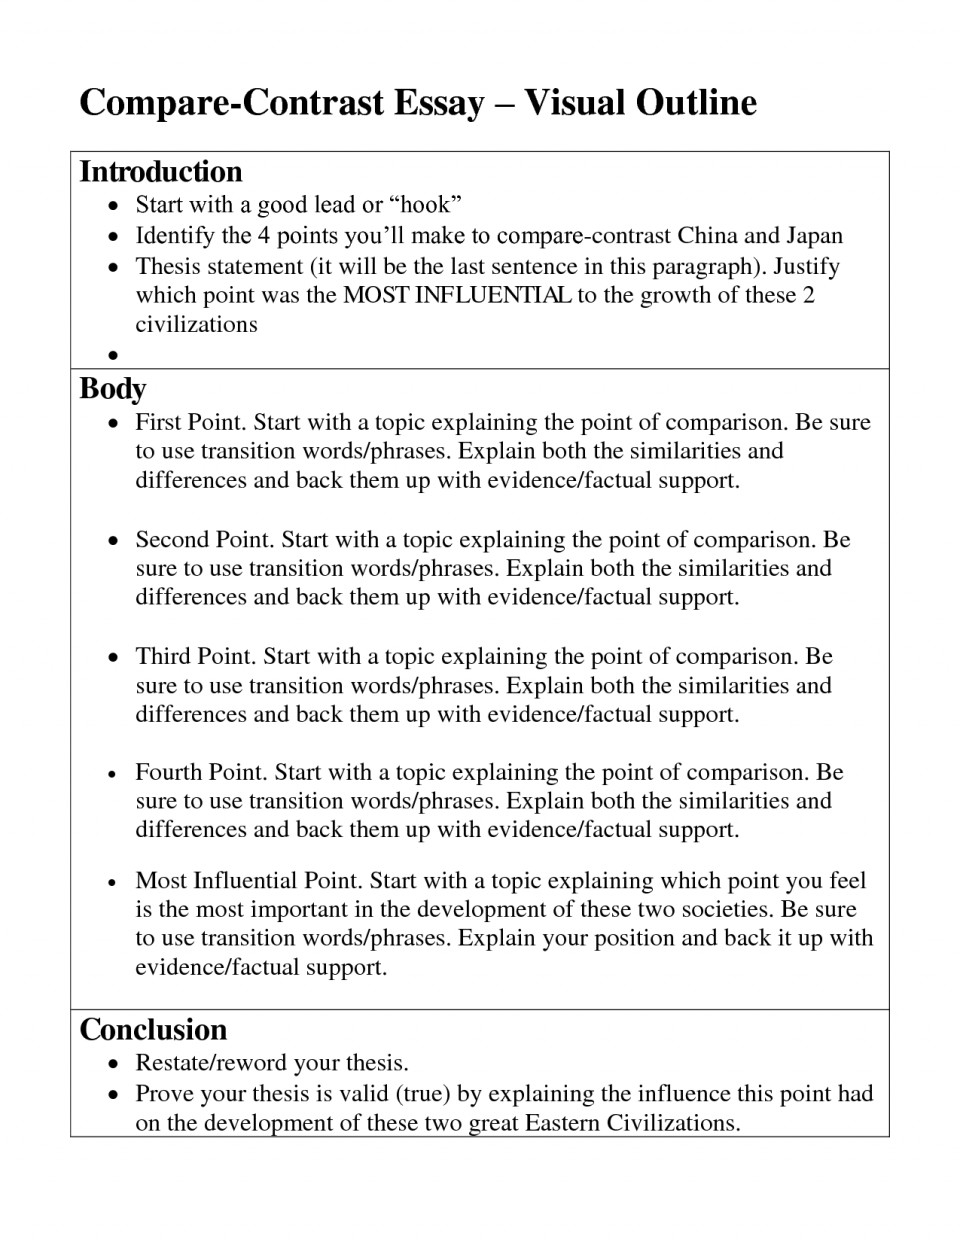 017 Compare And Contrast Essay Frightening Outline Block Method Ideas High School Template For Middle 960